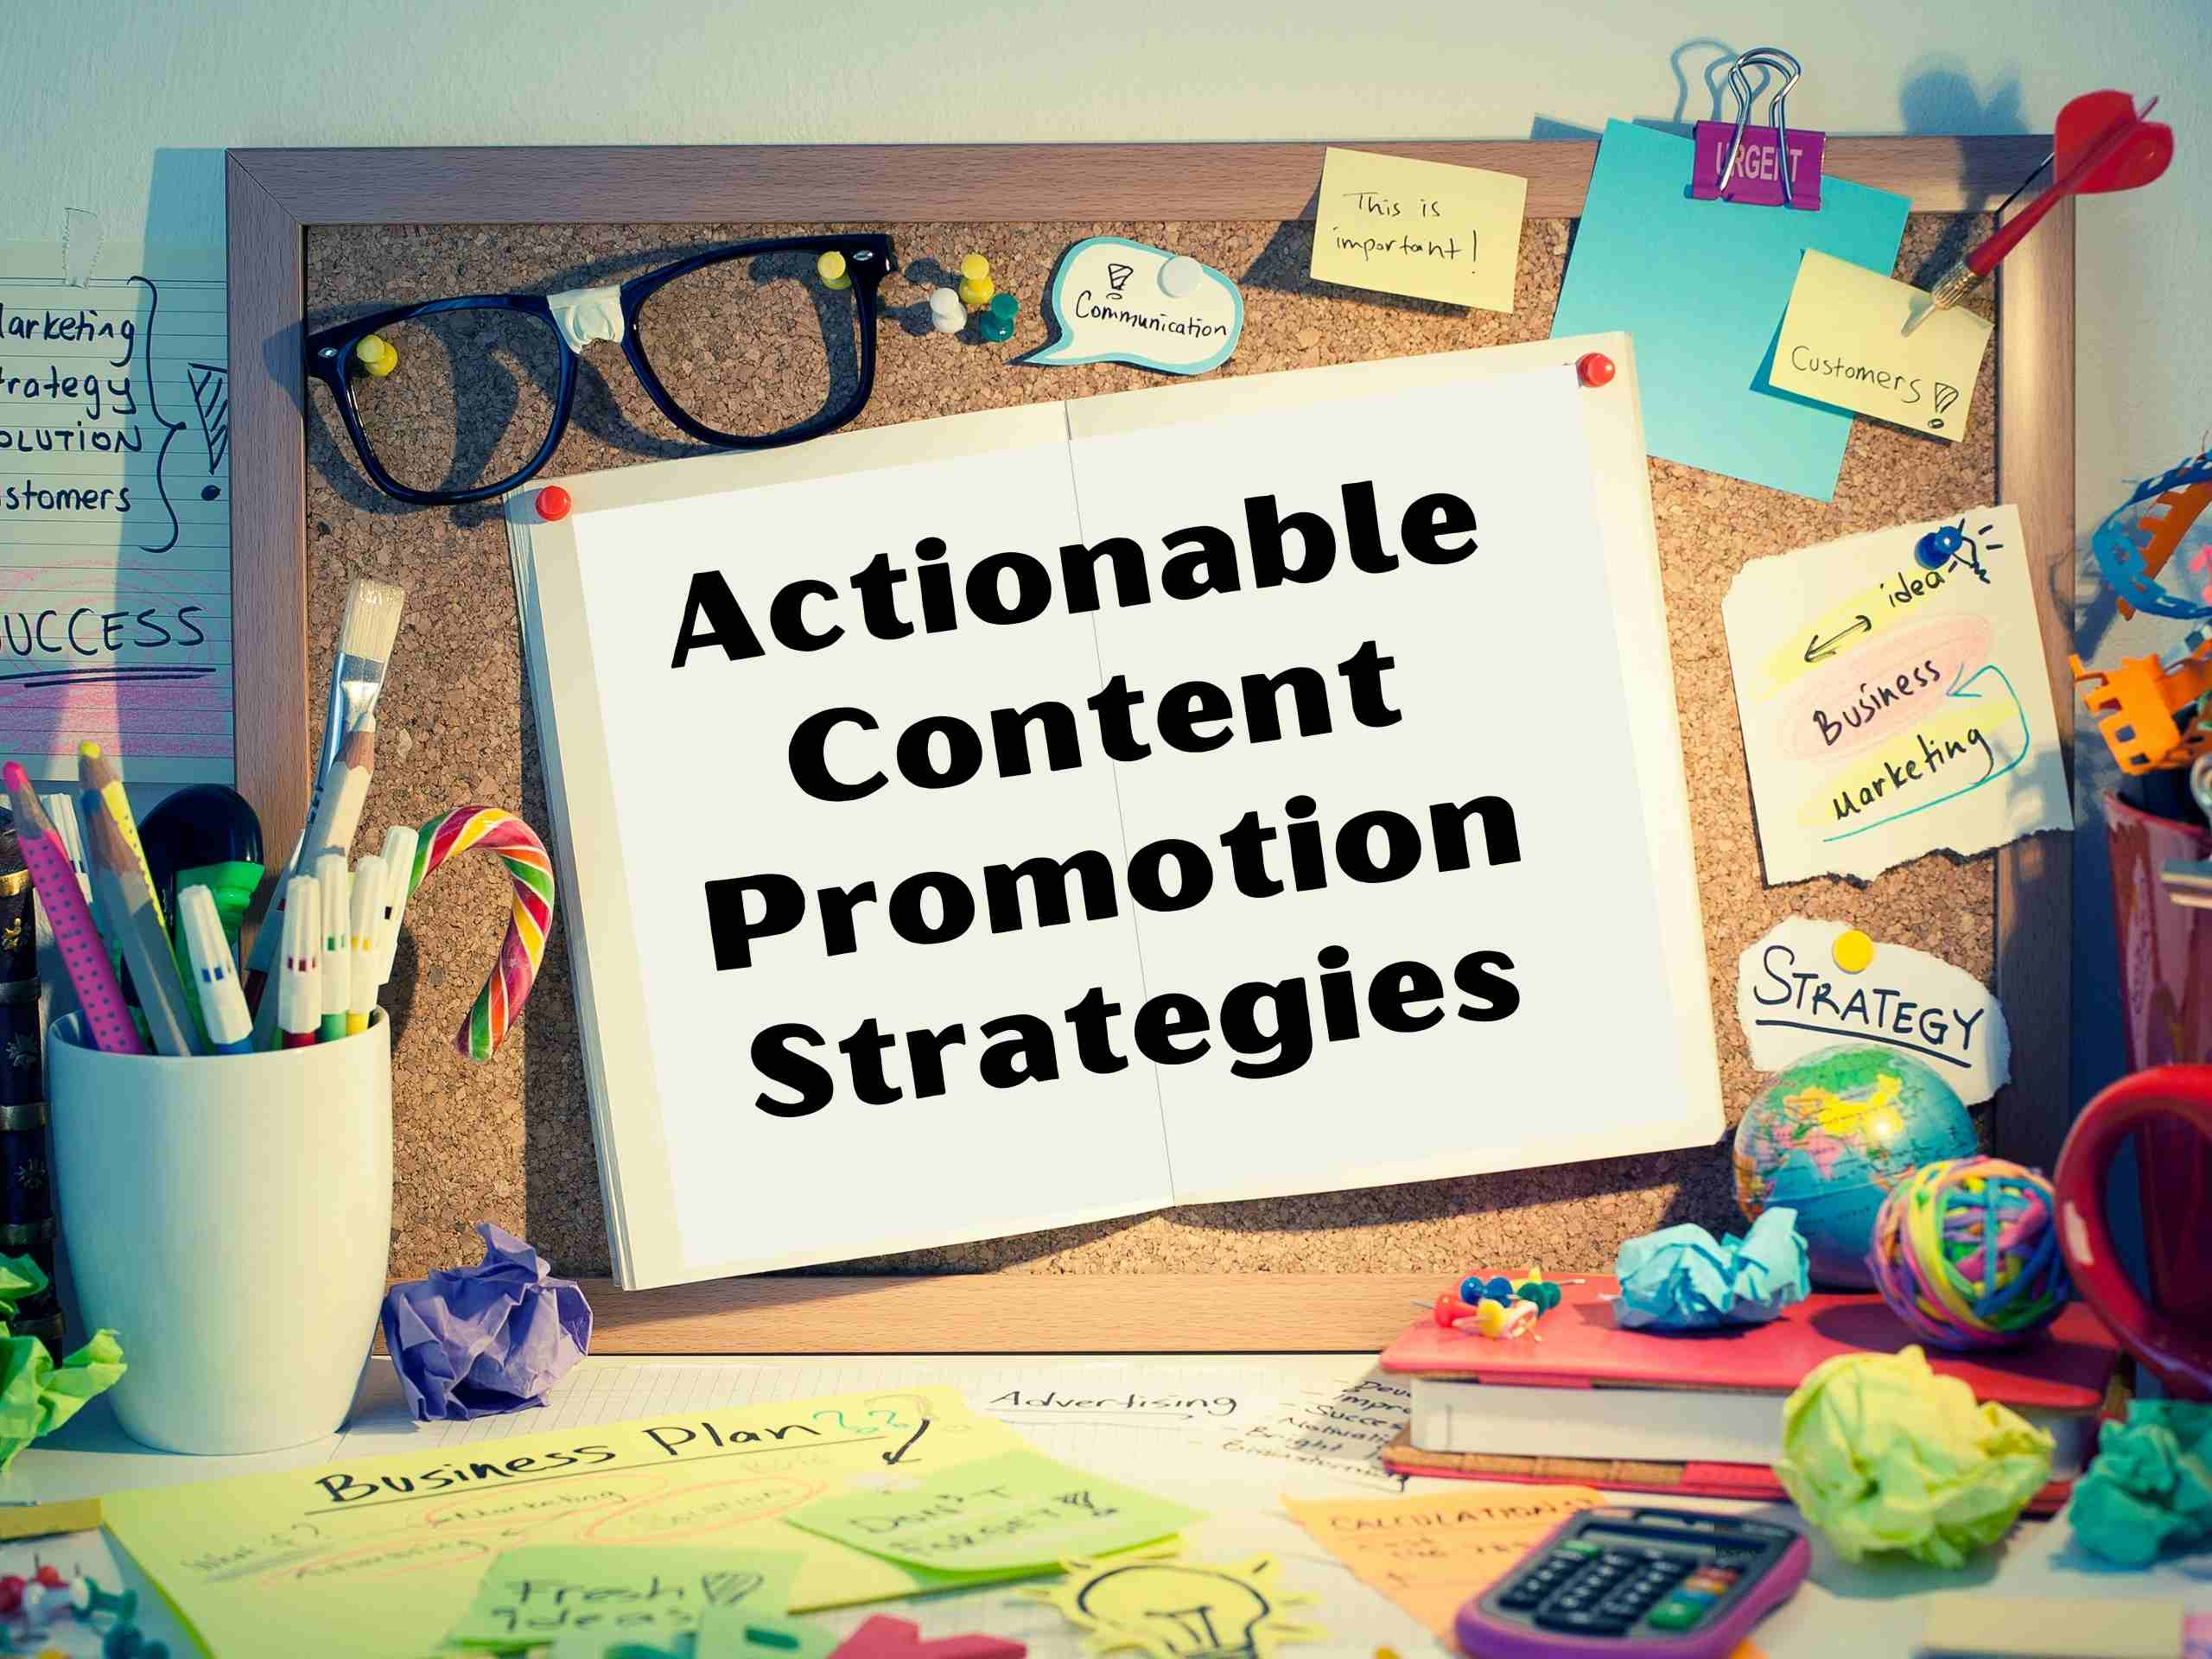 Actionable Content Promotion Strategies